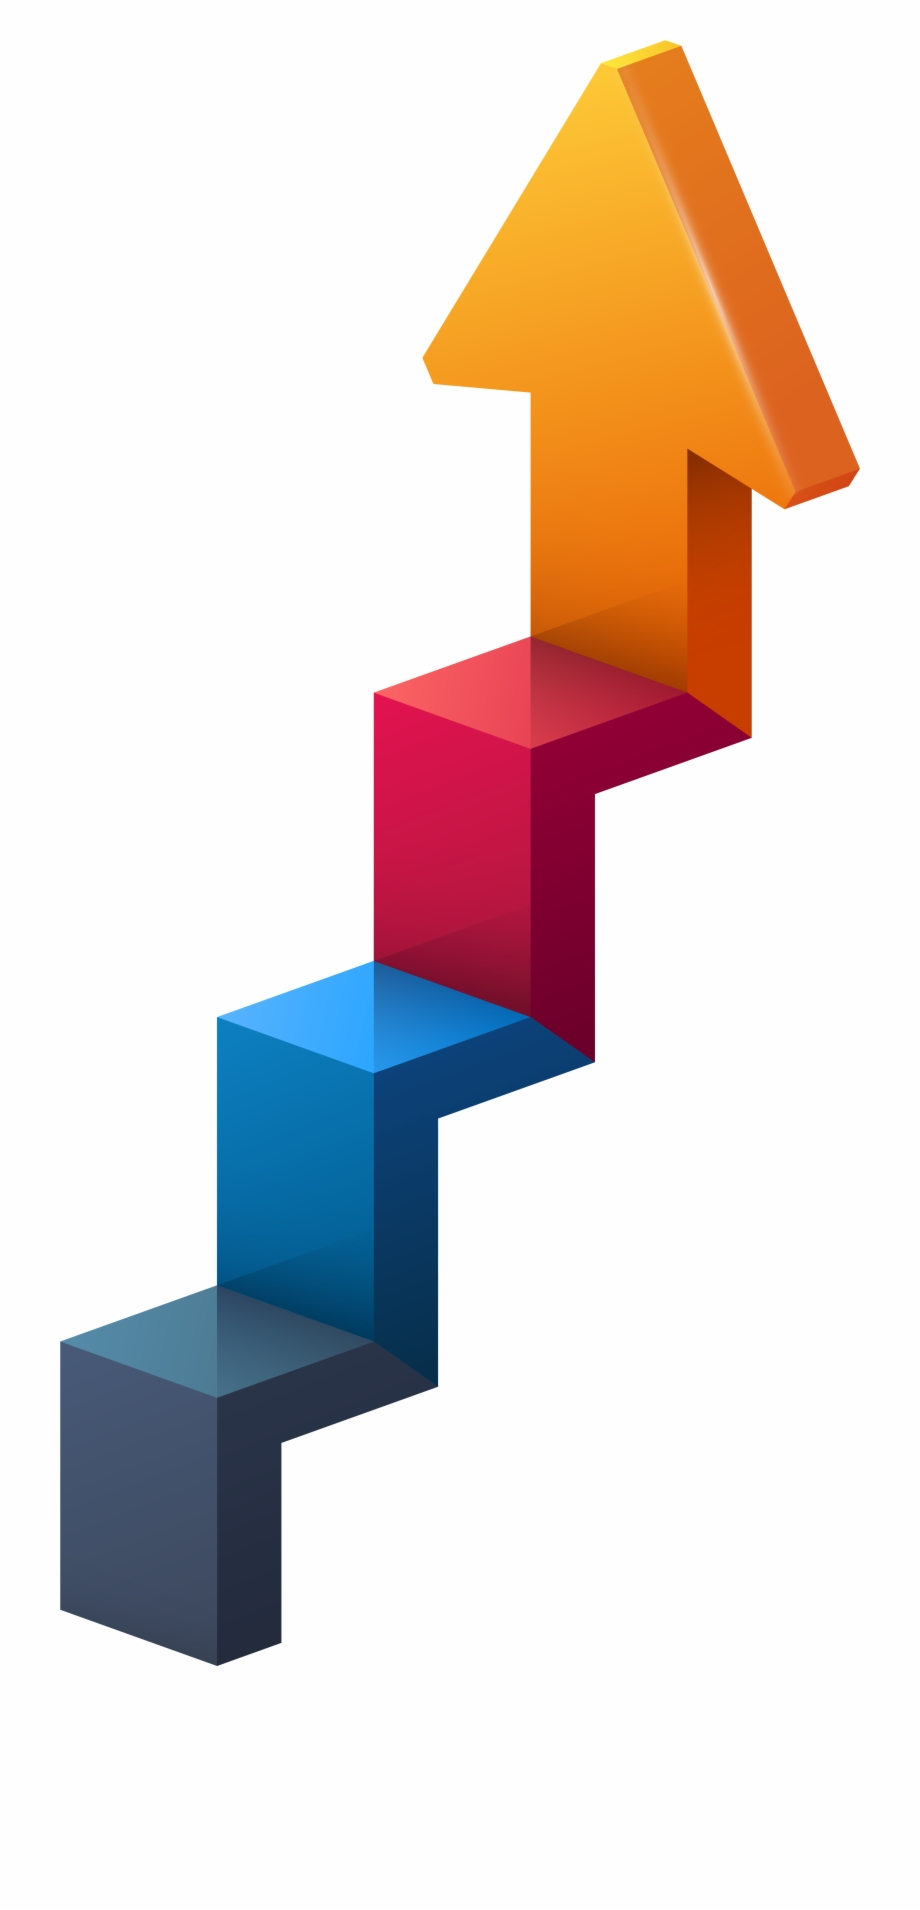 Stairs Arrow Transparent Png Clip Art Image Gallery.